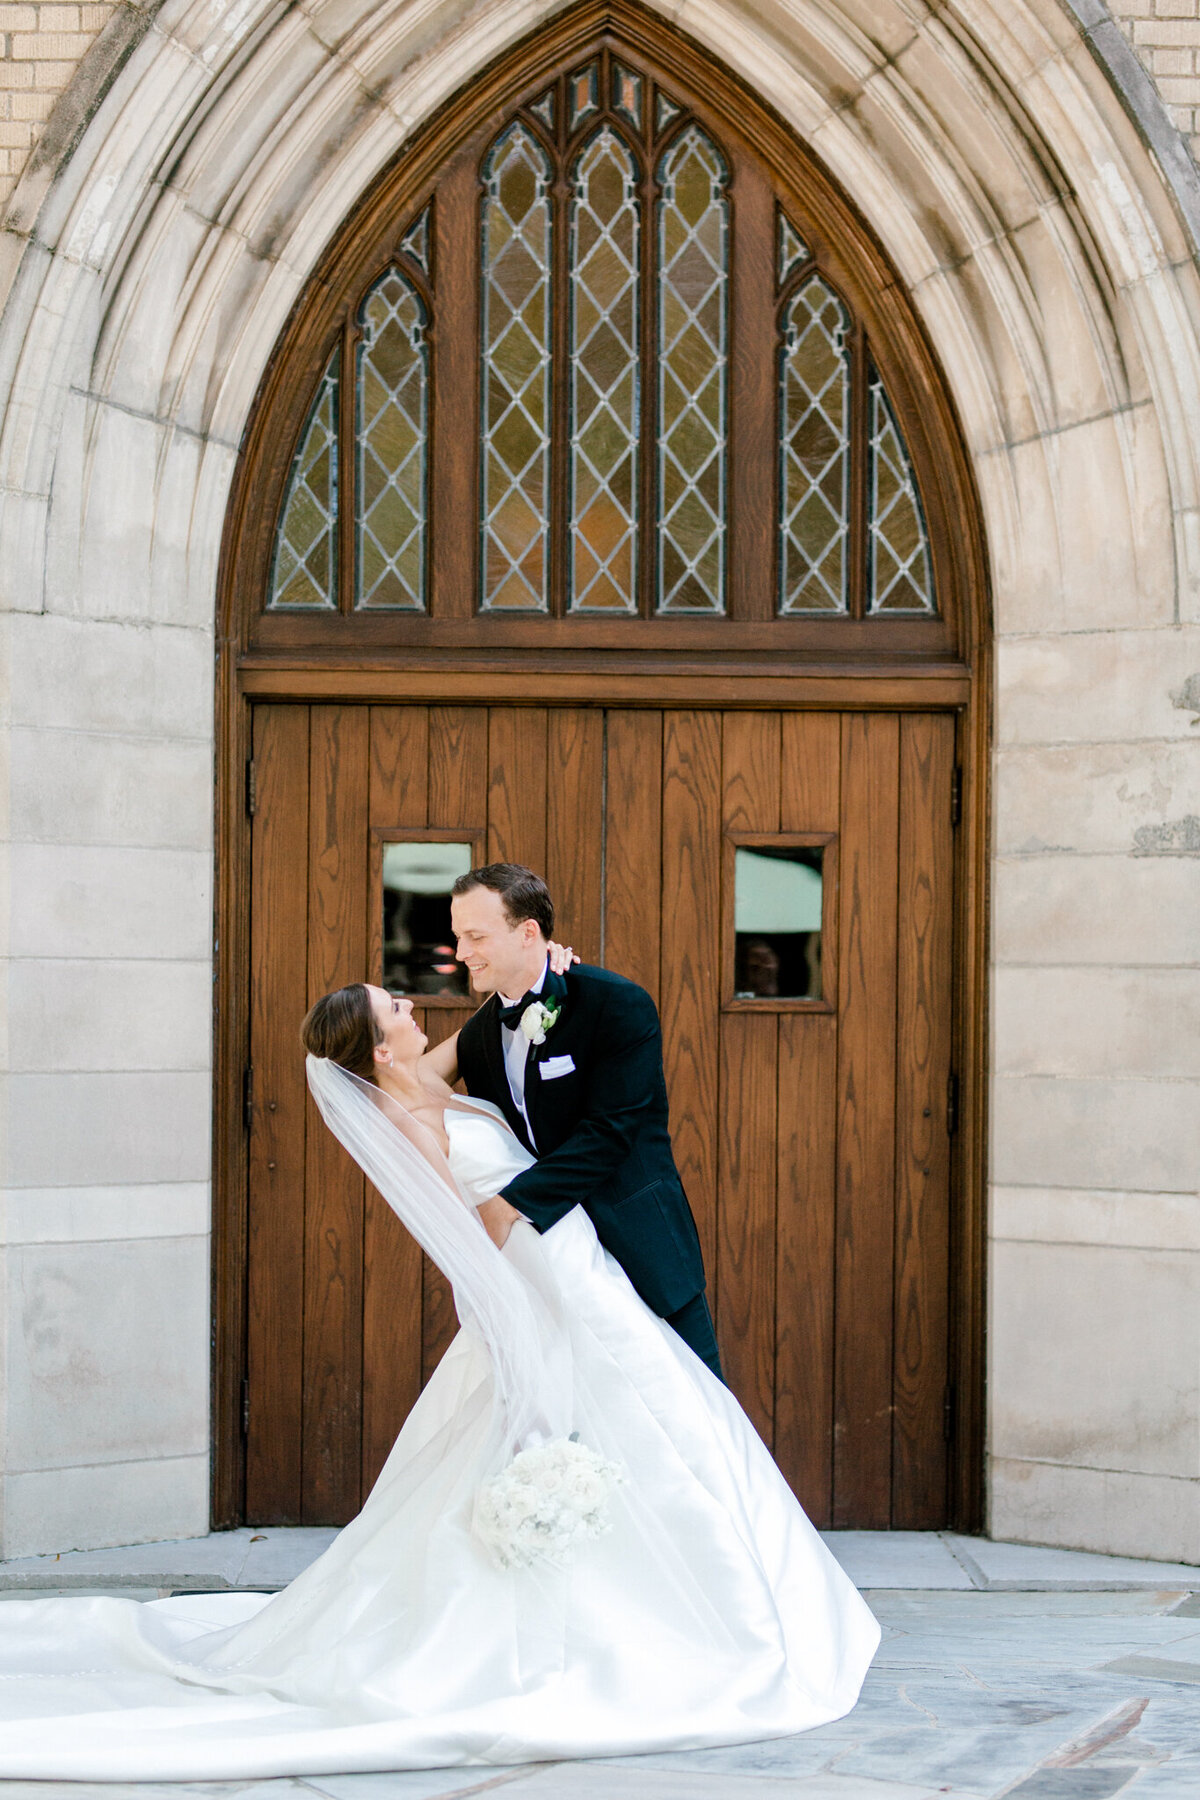 Wedding at the Crescent Court Hotel and Highland Park United Methodist Church in Dallas | Sami Kathryn Photography | DFW Wedding Photographer-134